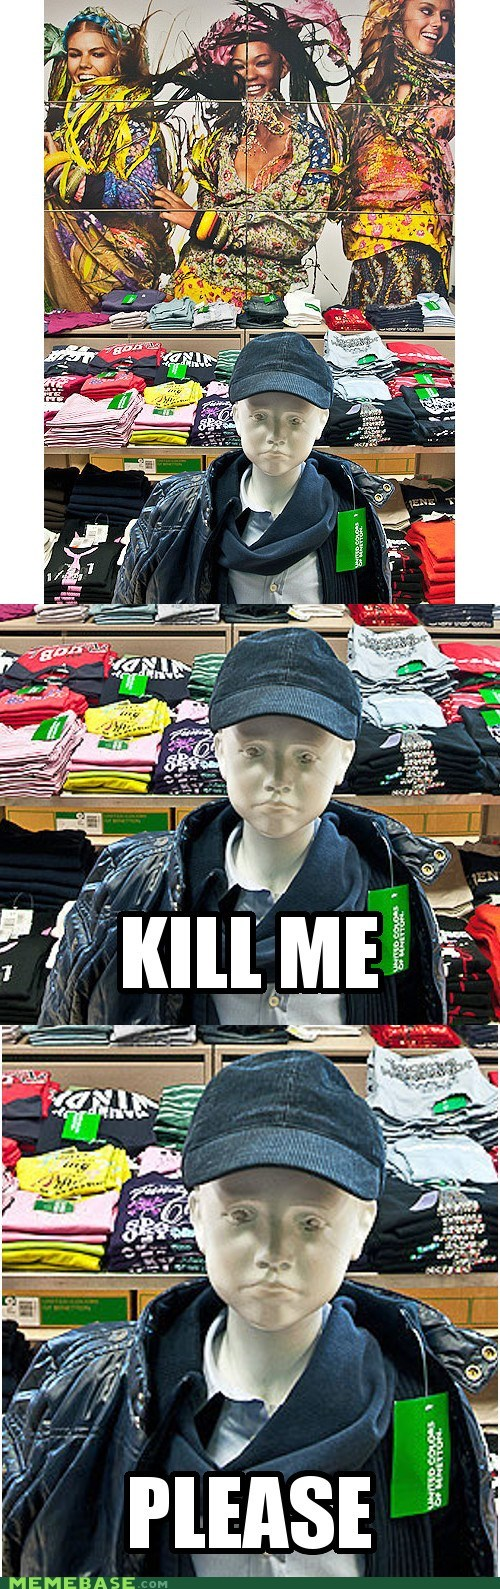 kill me now,mannequin,cloths,mercy,store